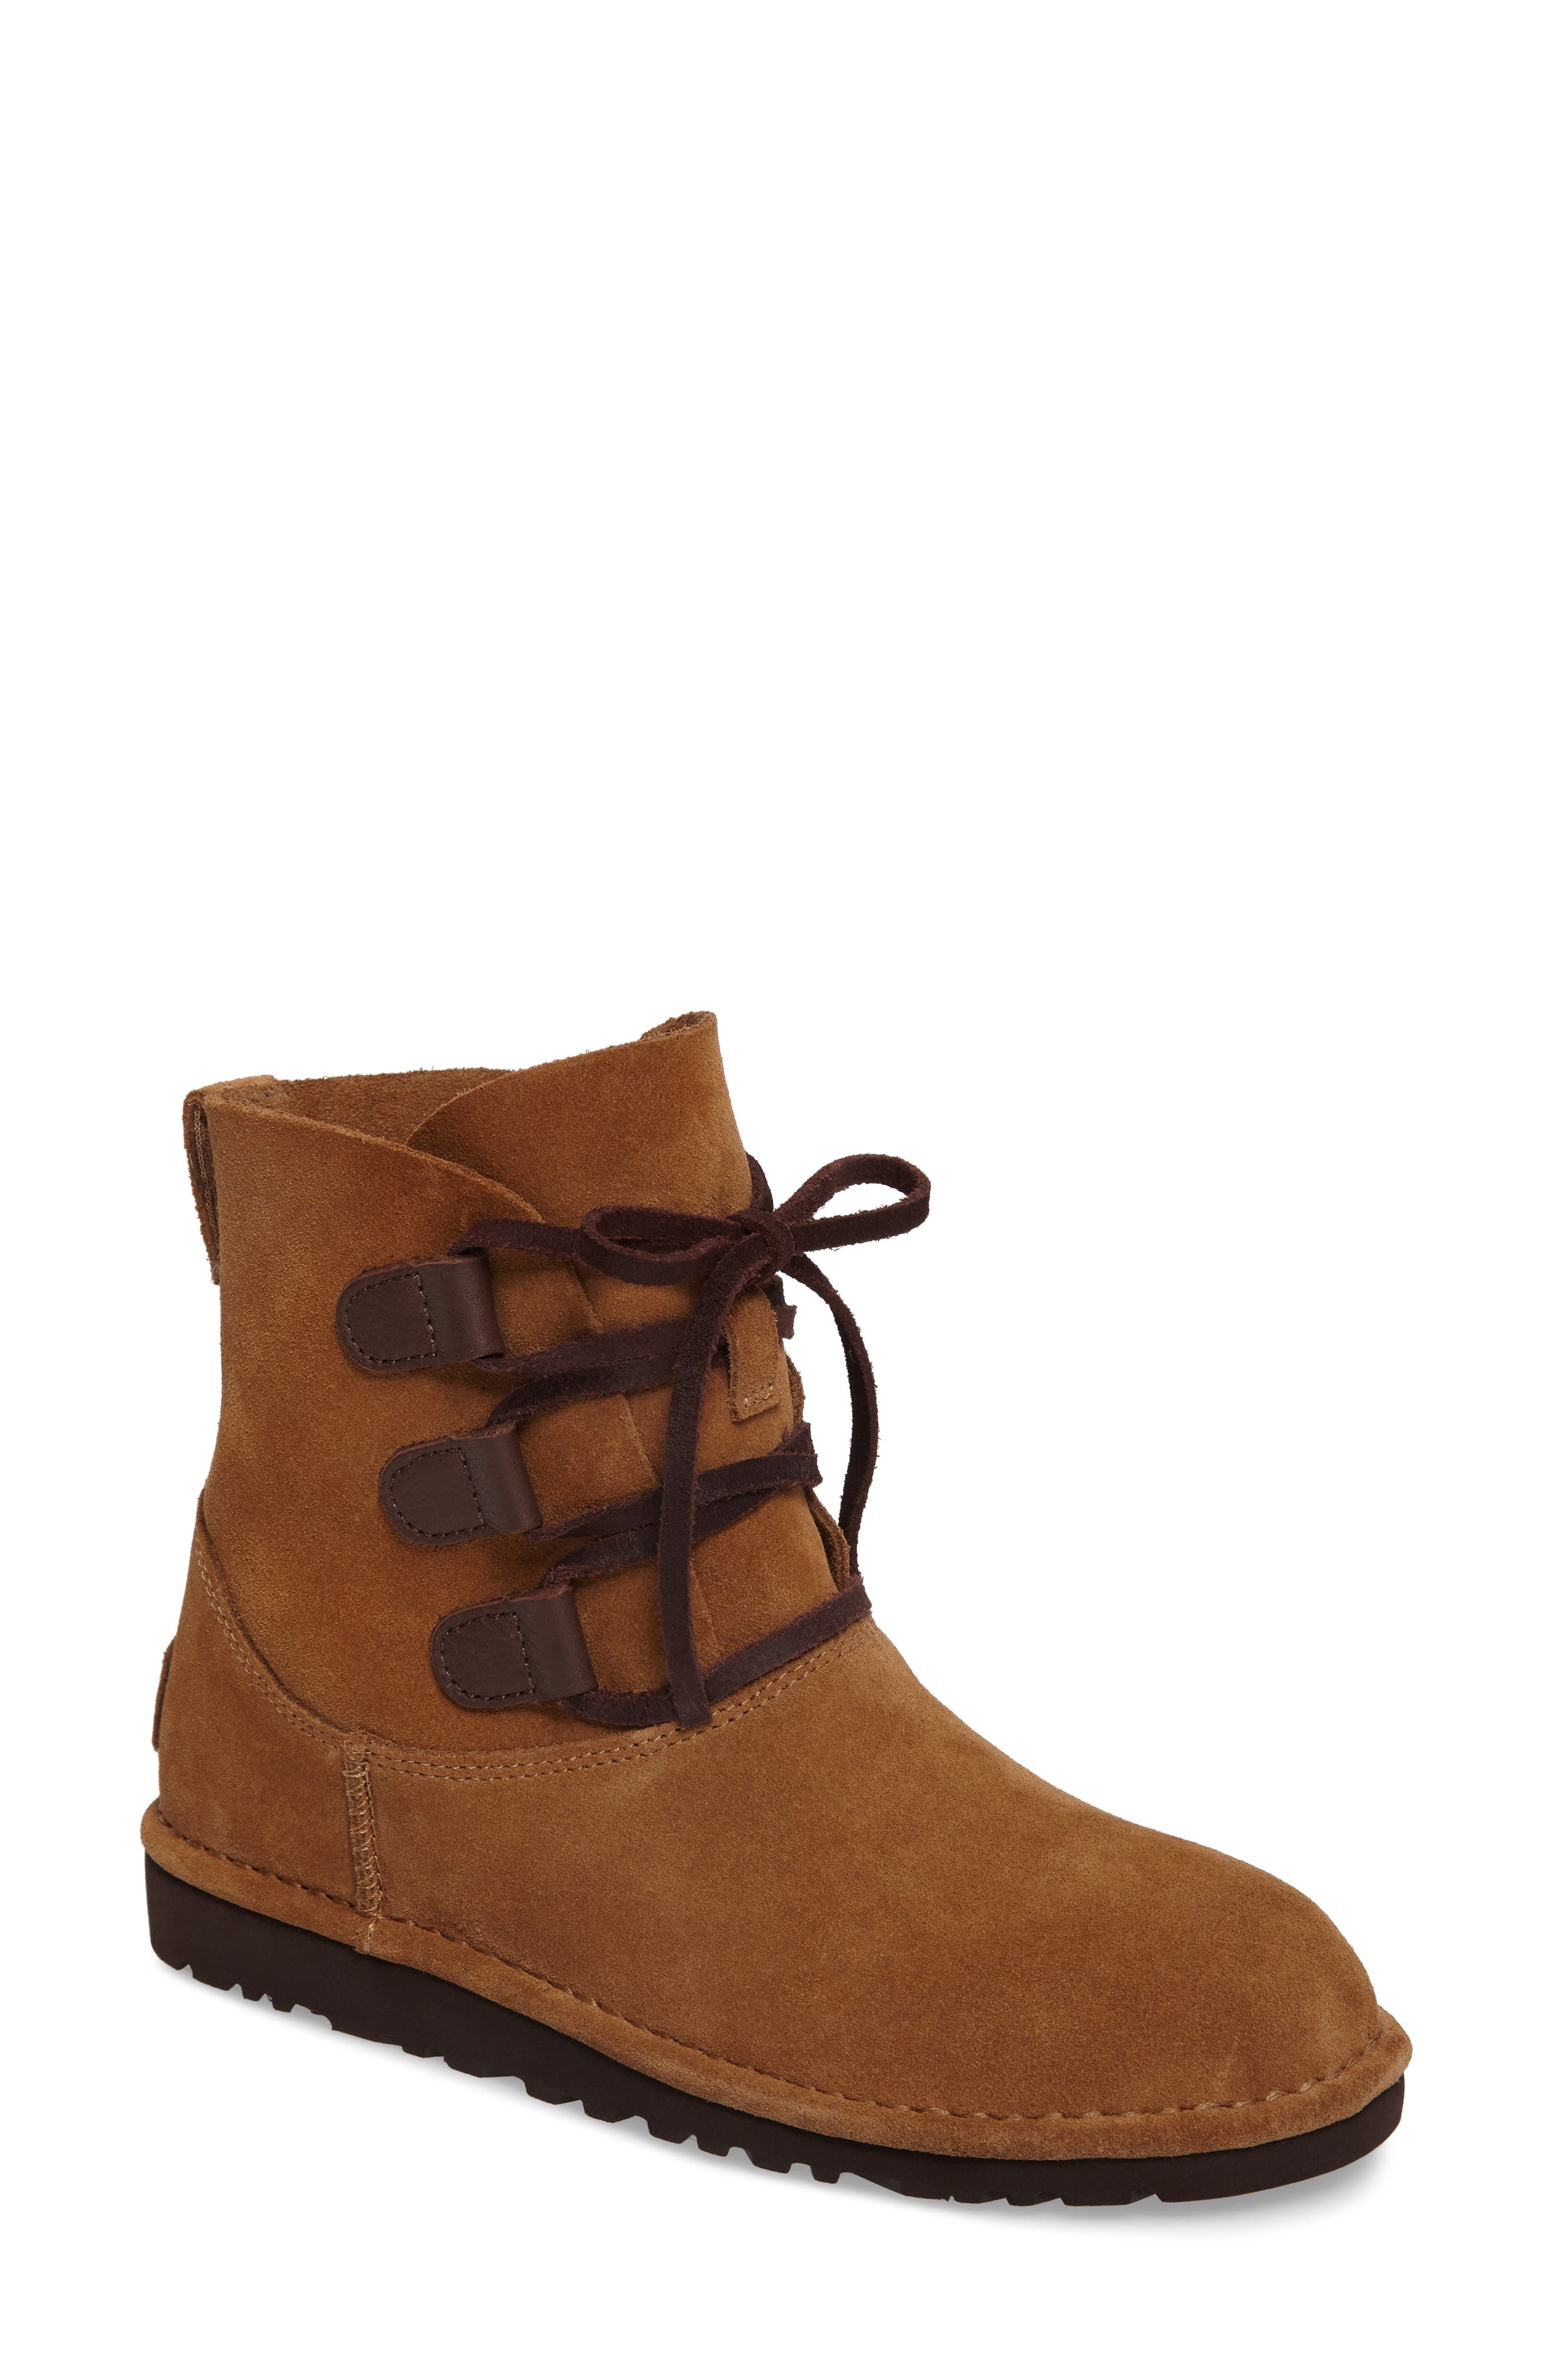 Elvi Short Boot,                             Main thumbnail 2, color,